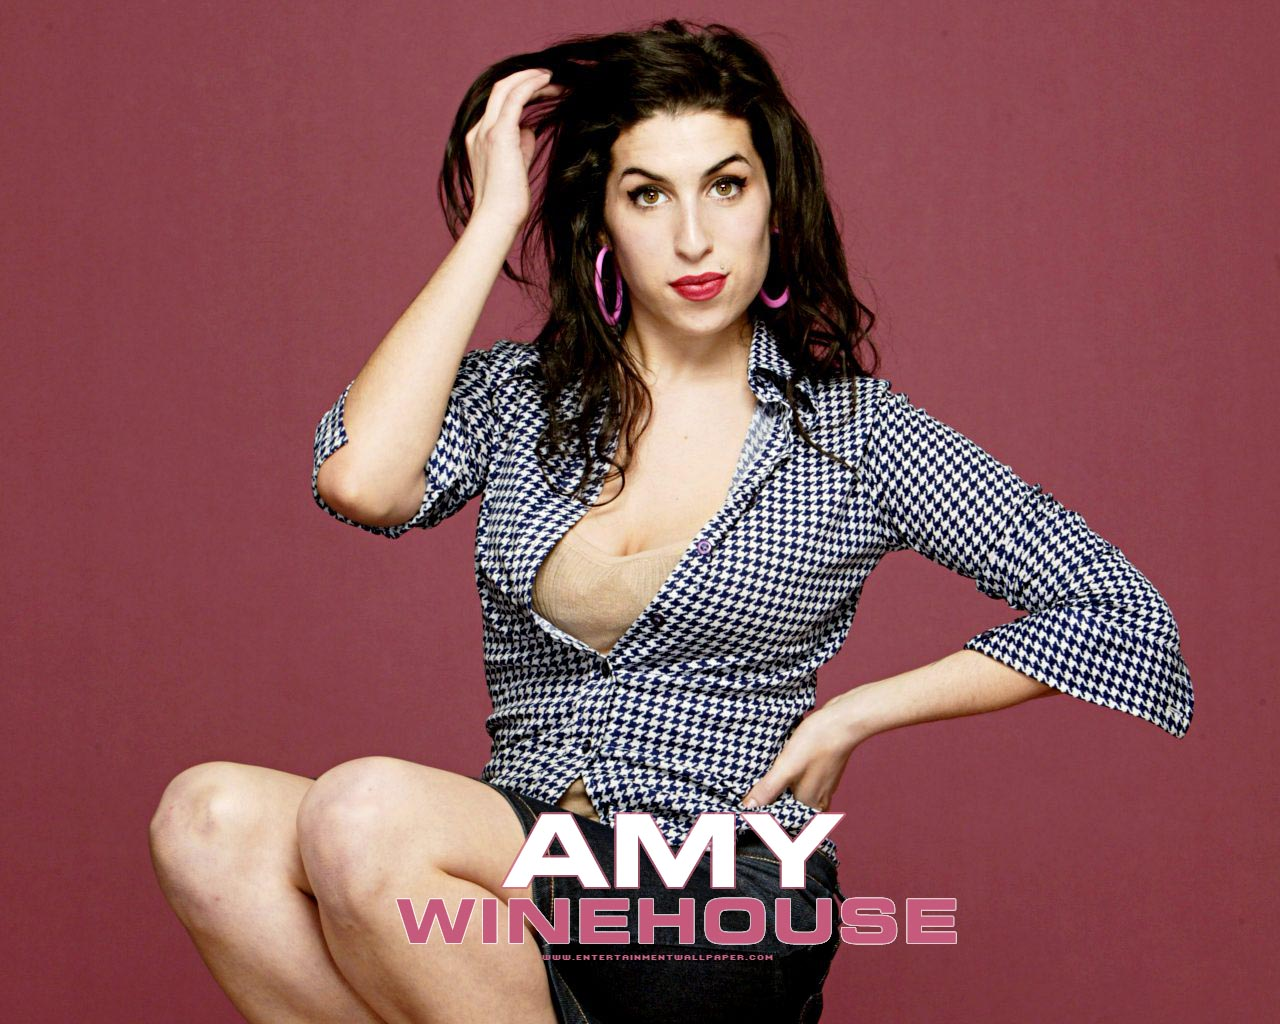 Grammy Award Winner AMY WINEHOUSE ranks No. 1